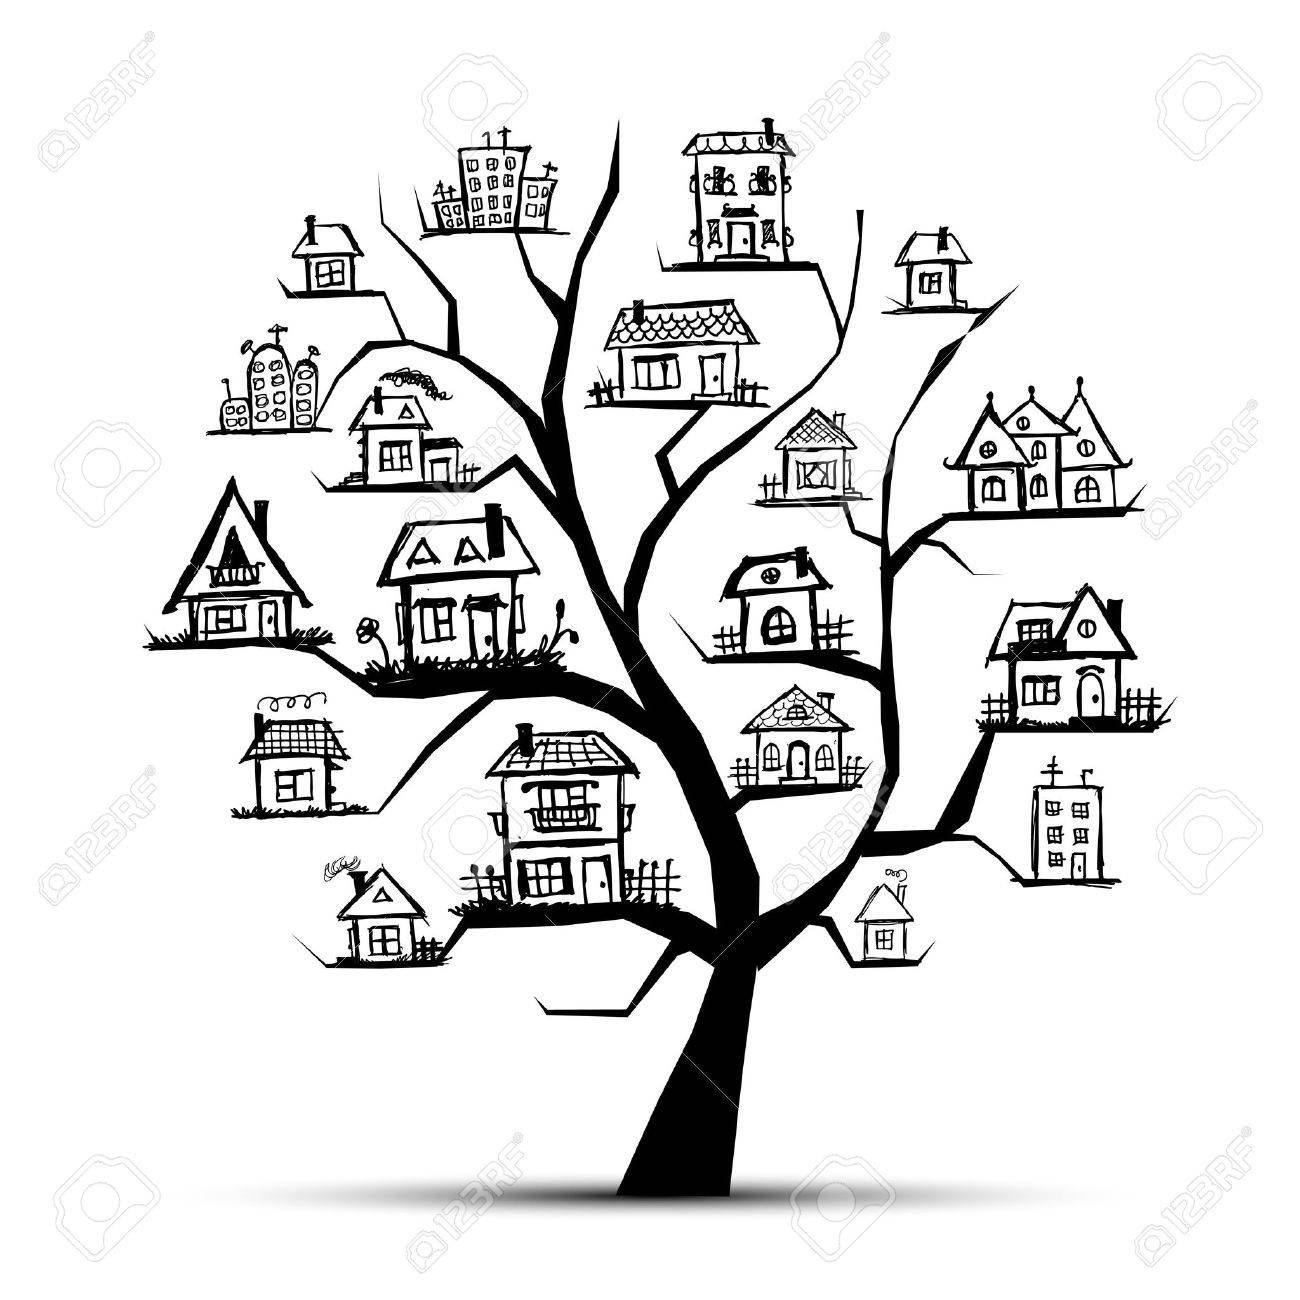 76 151 tree house cliparts stock vector and royalty free tree